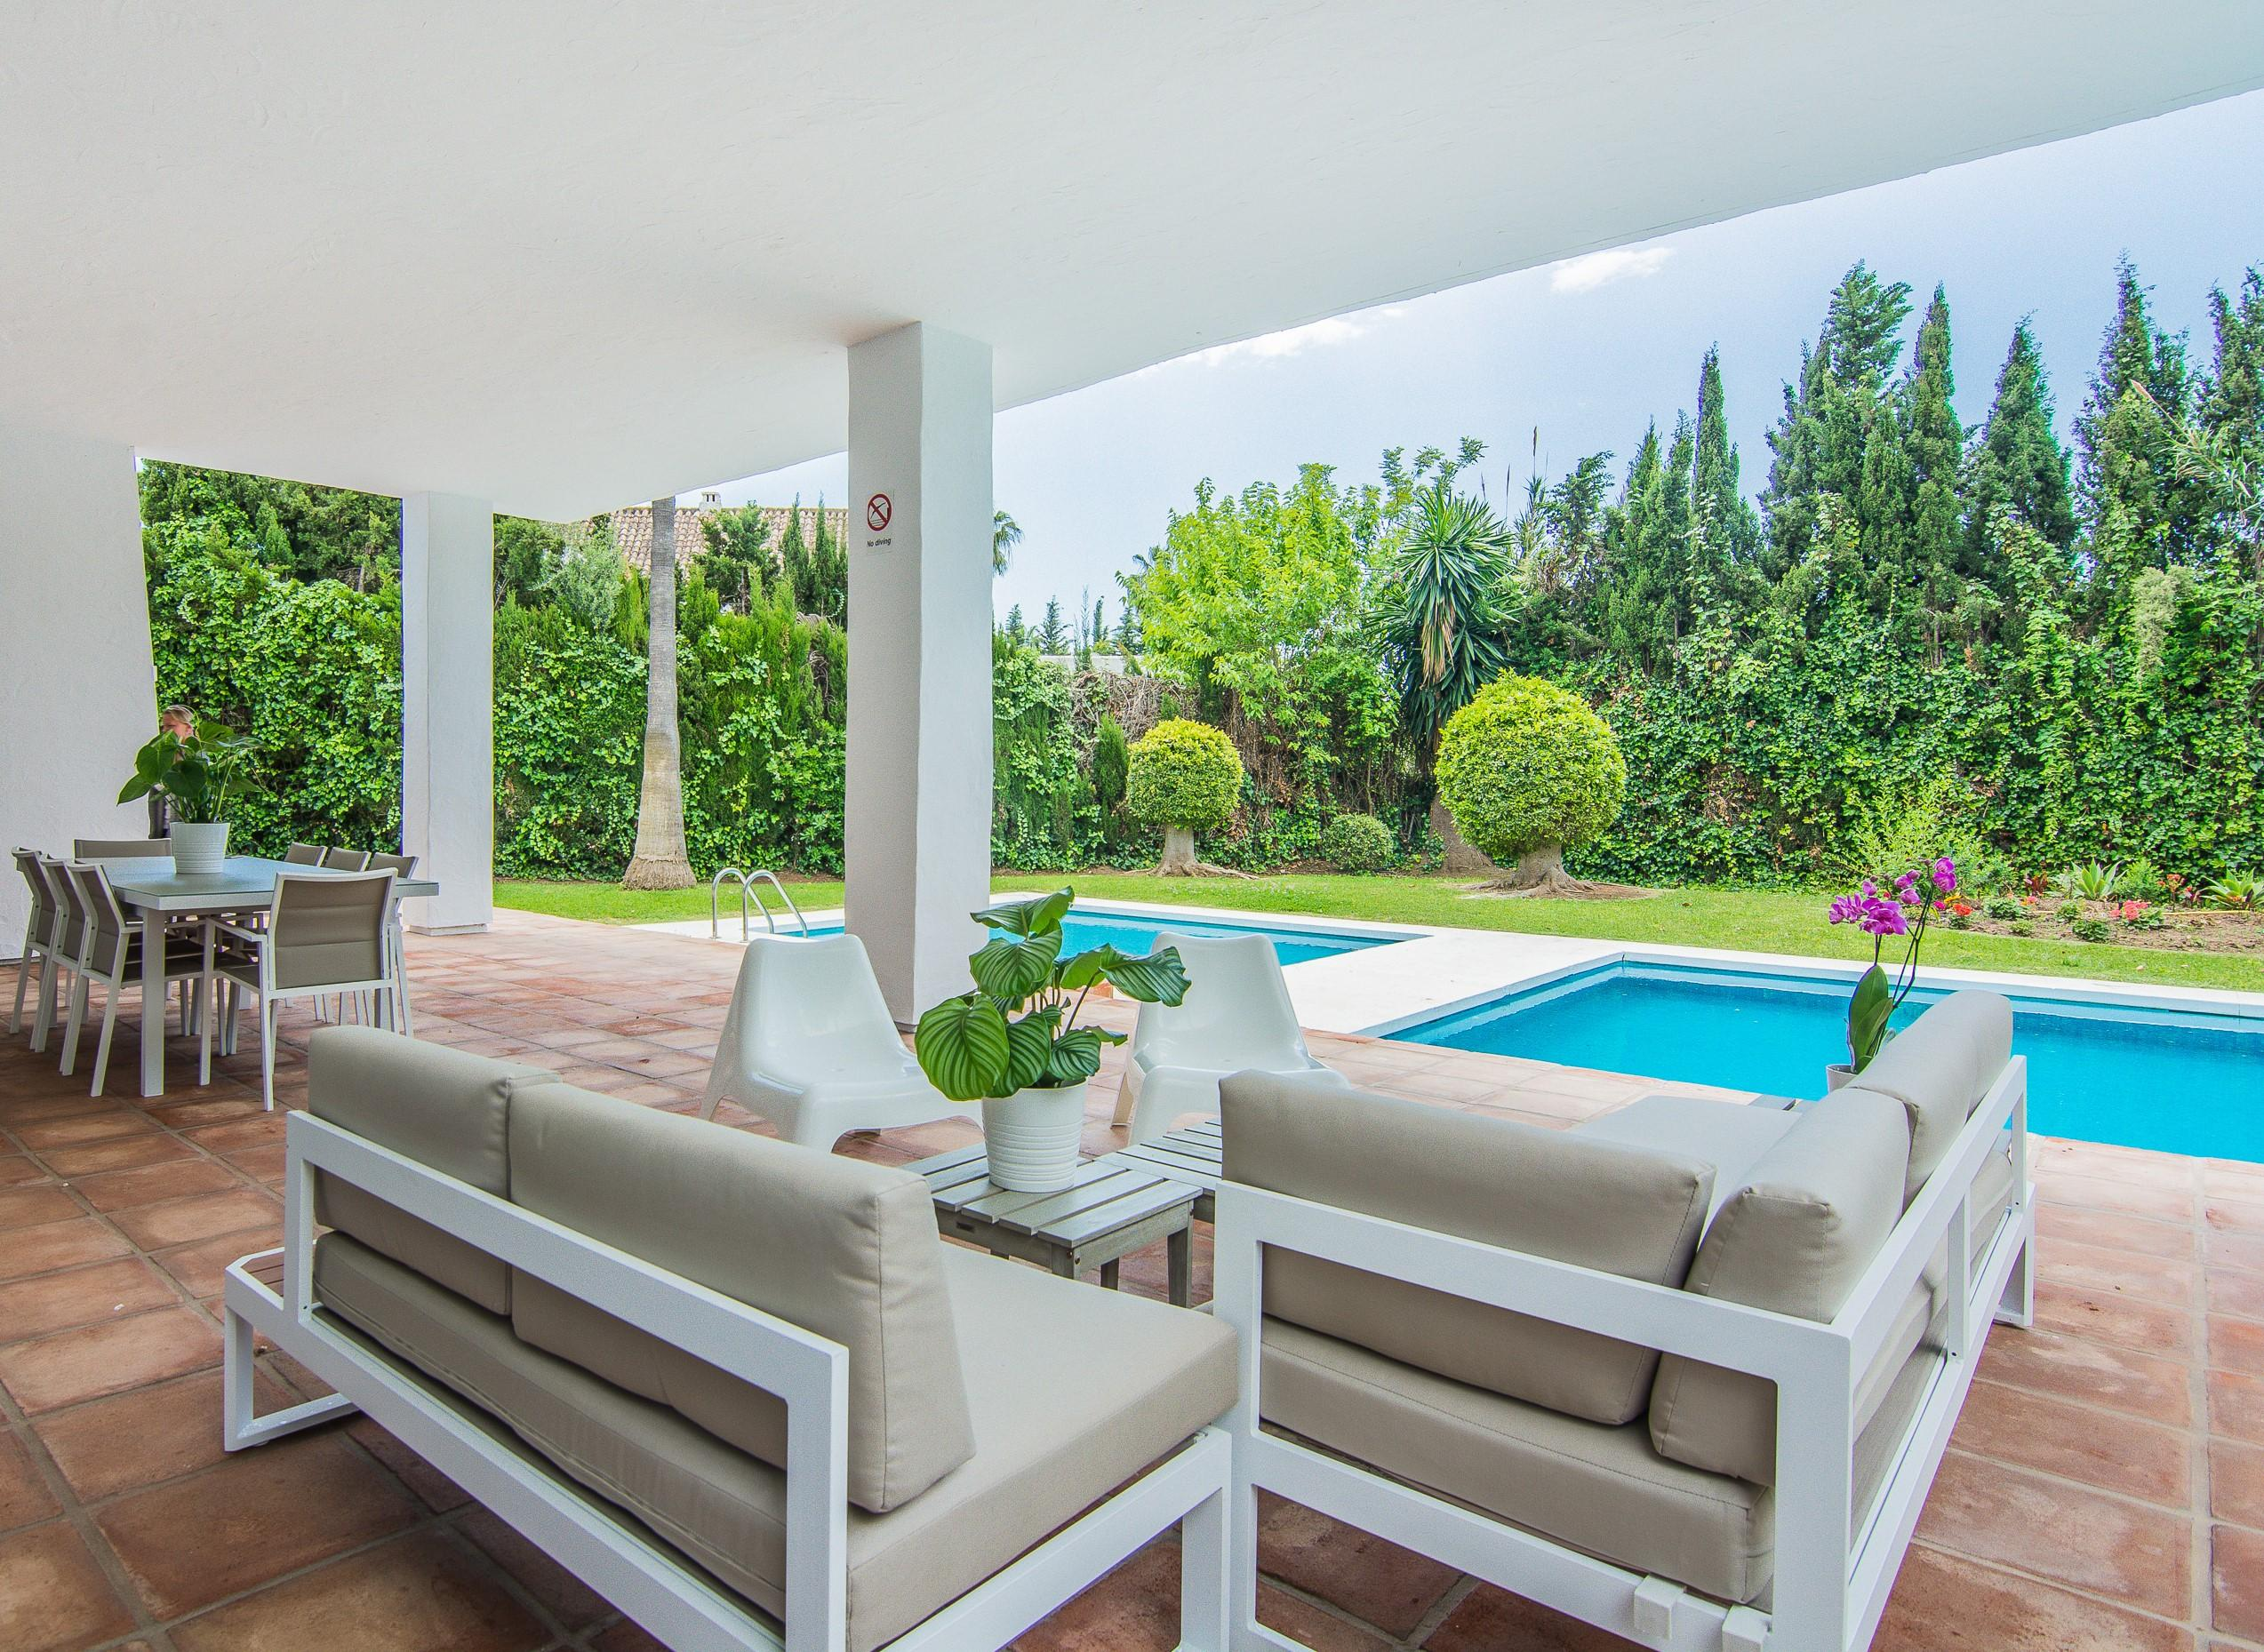 villa marina 4 bedooms, Villa available for Holiday Rental in Puerto Banus, Marbella, Spain